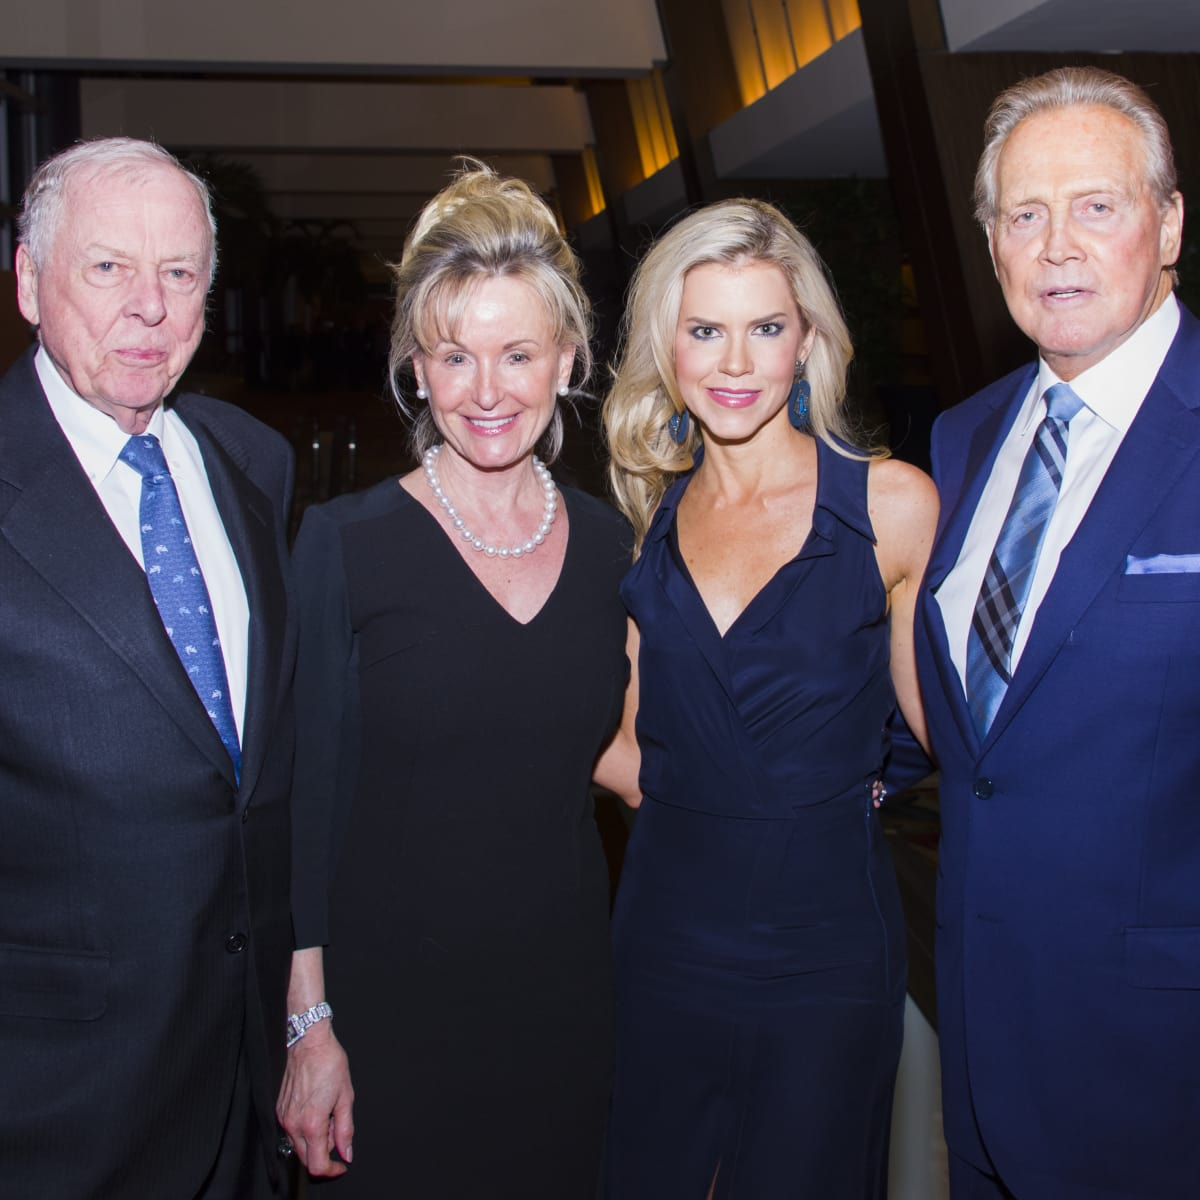 Texas Heart Institute dinner, Feb. 2016, T. Boone Pickens, Toni Pickens, Faith Majors Lee Majors